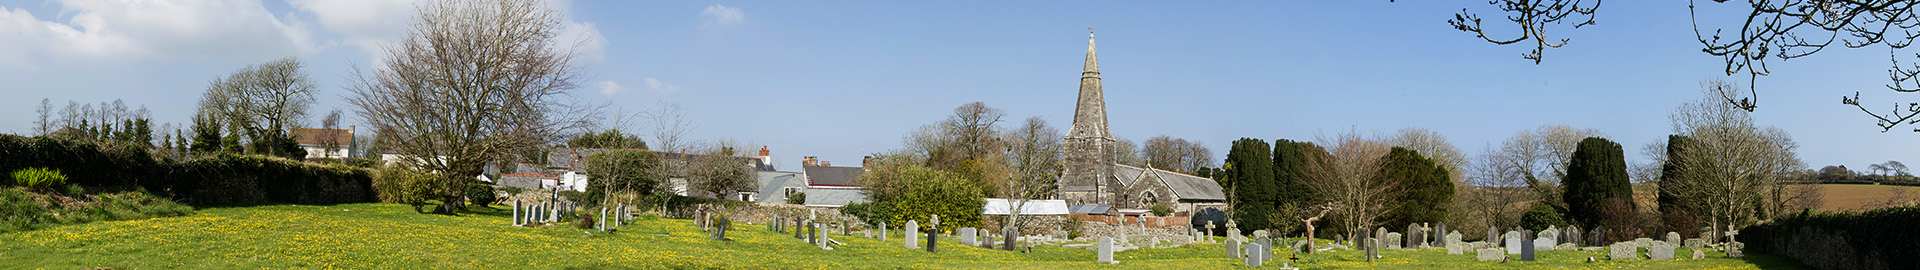 St Ewe Church Yard Panoramic